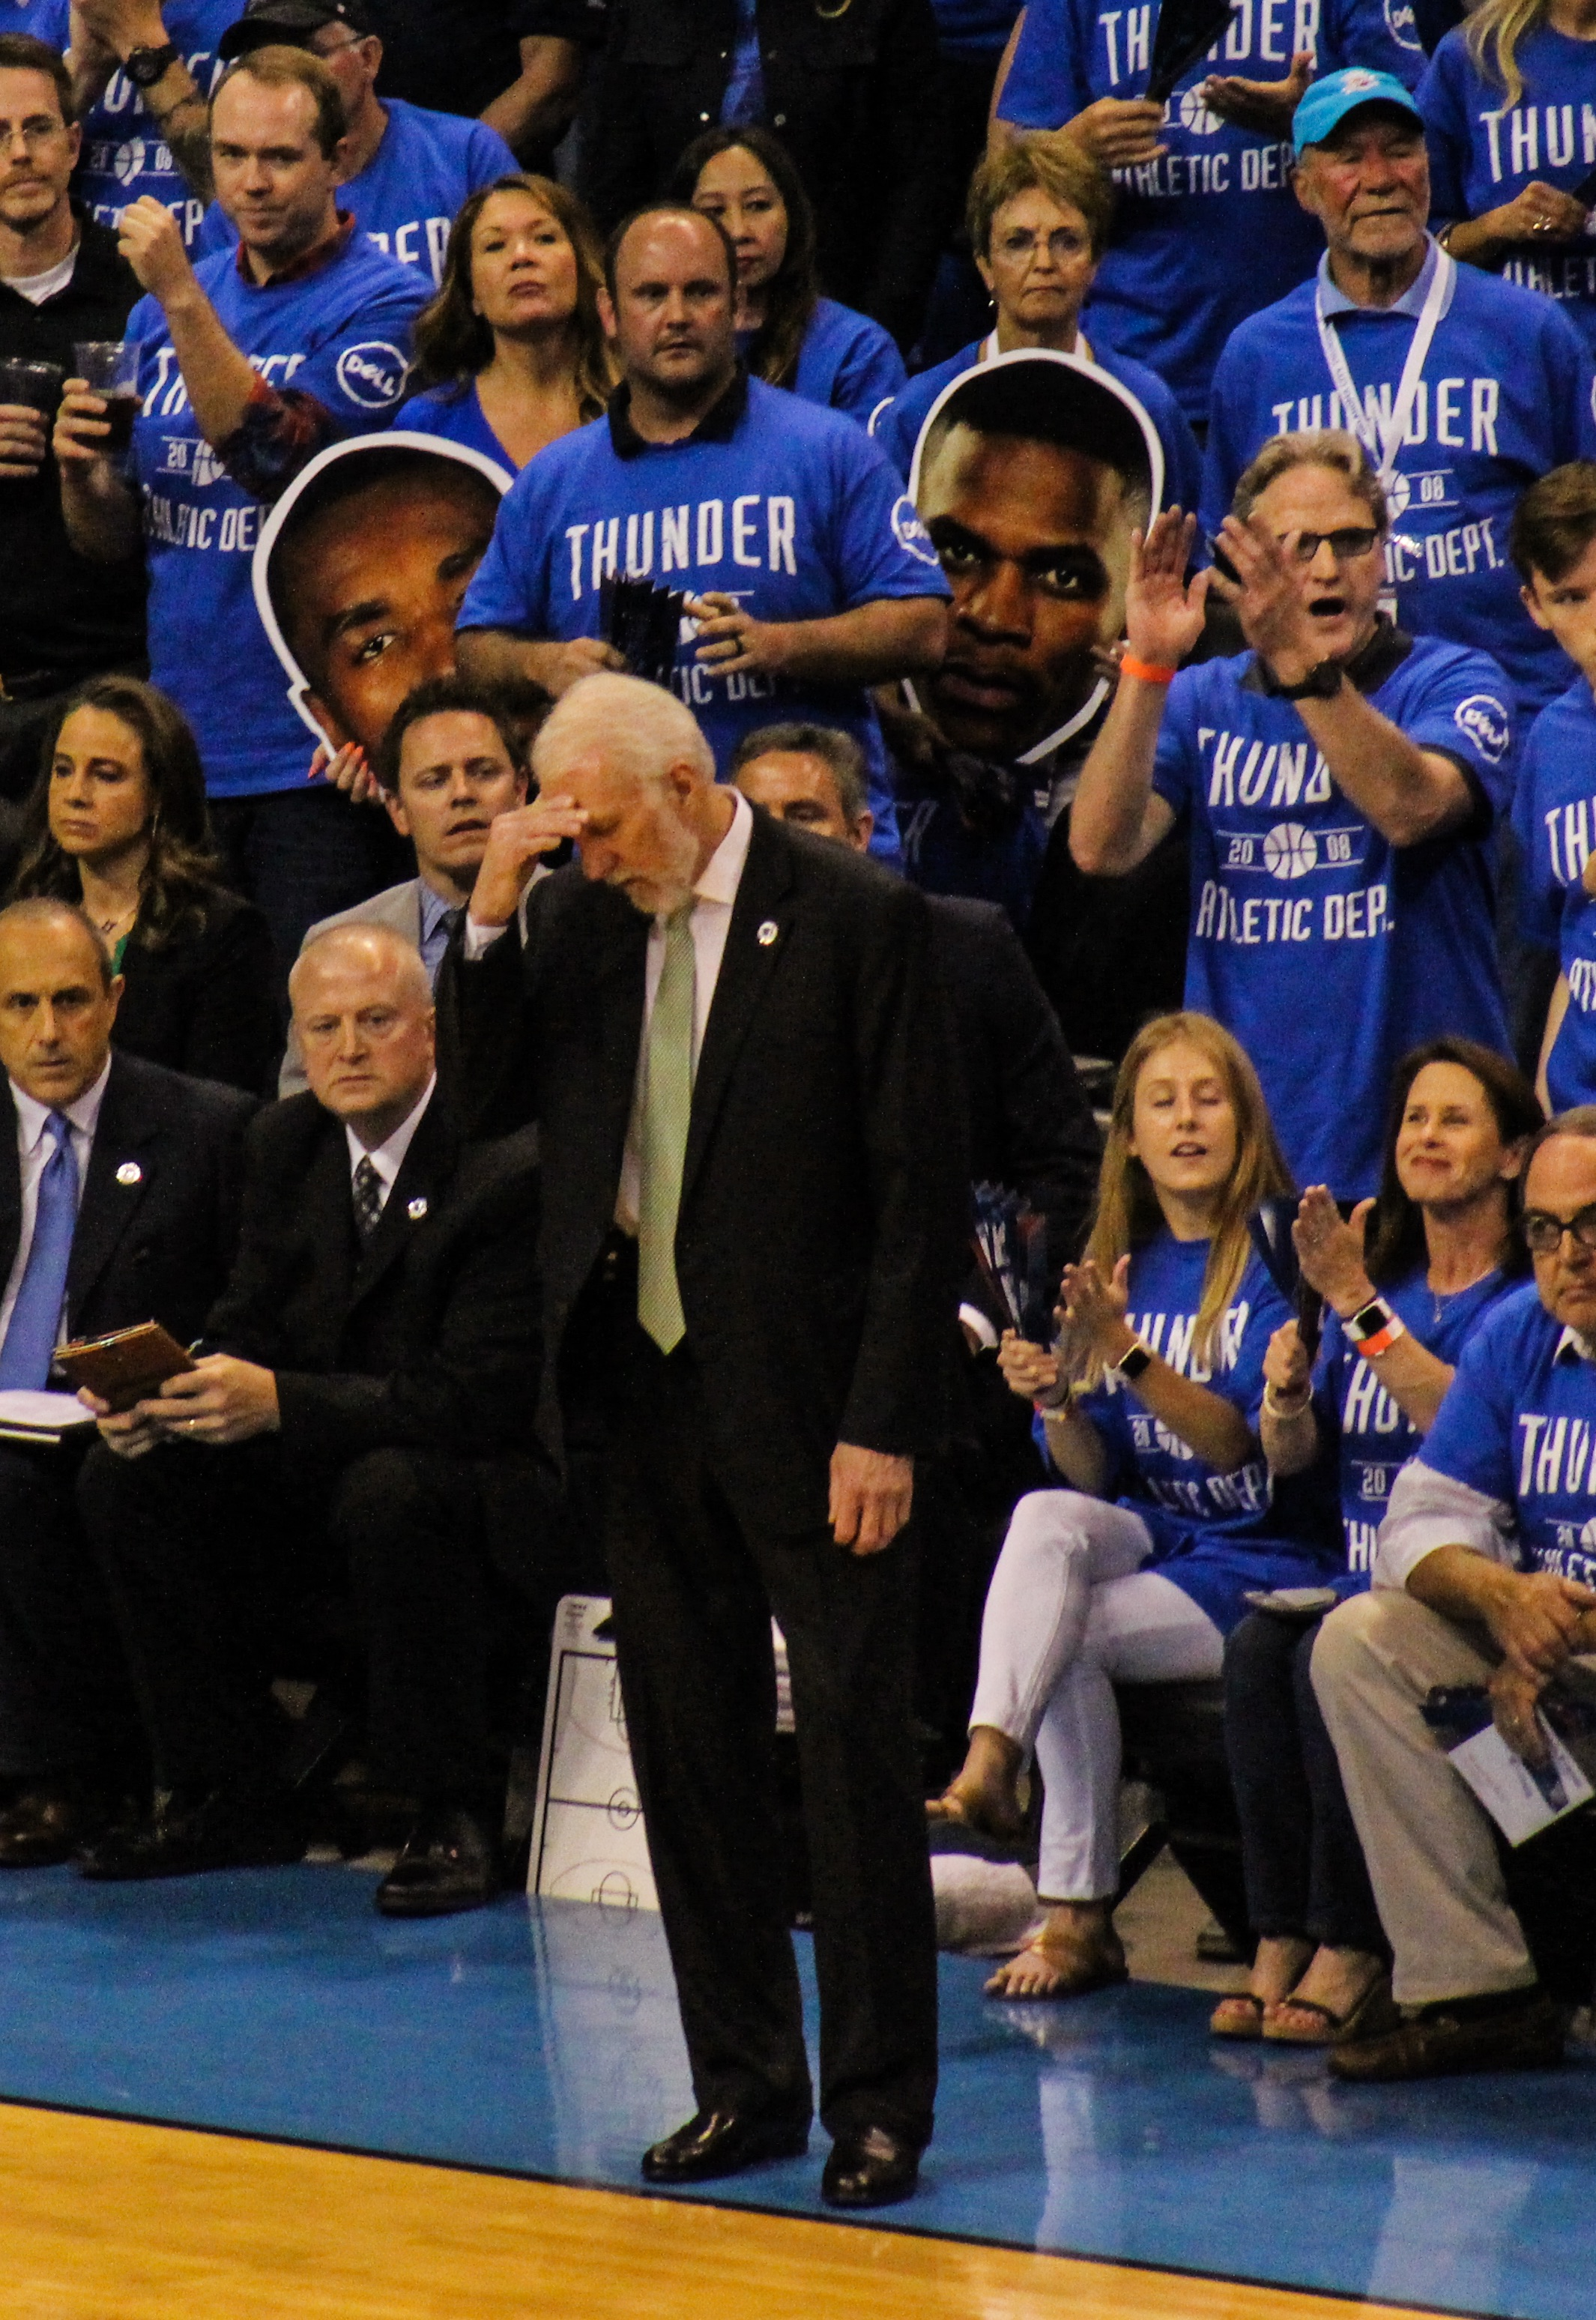 San Antonio head coach Greg Popovich showing his frustration. Photo by Sam Murch/ InsideThunder.com